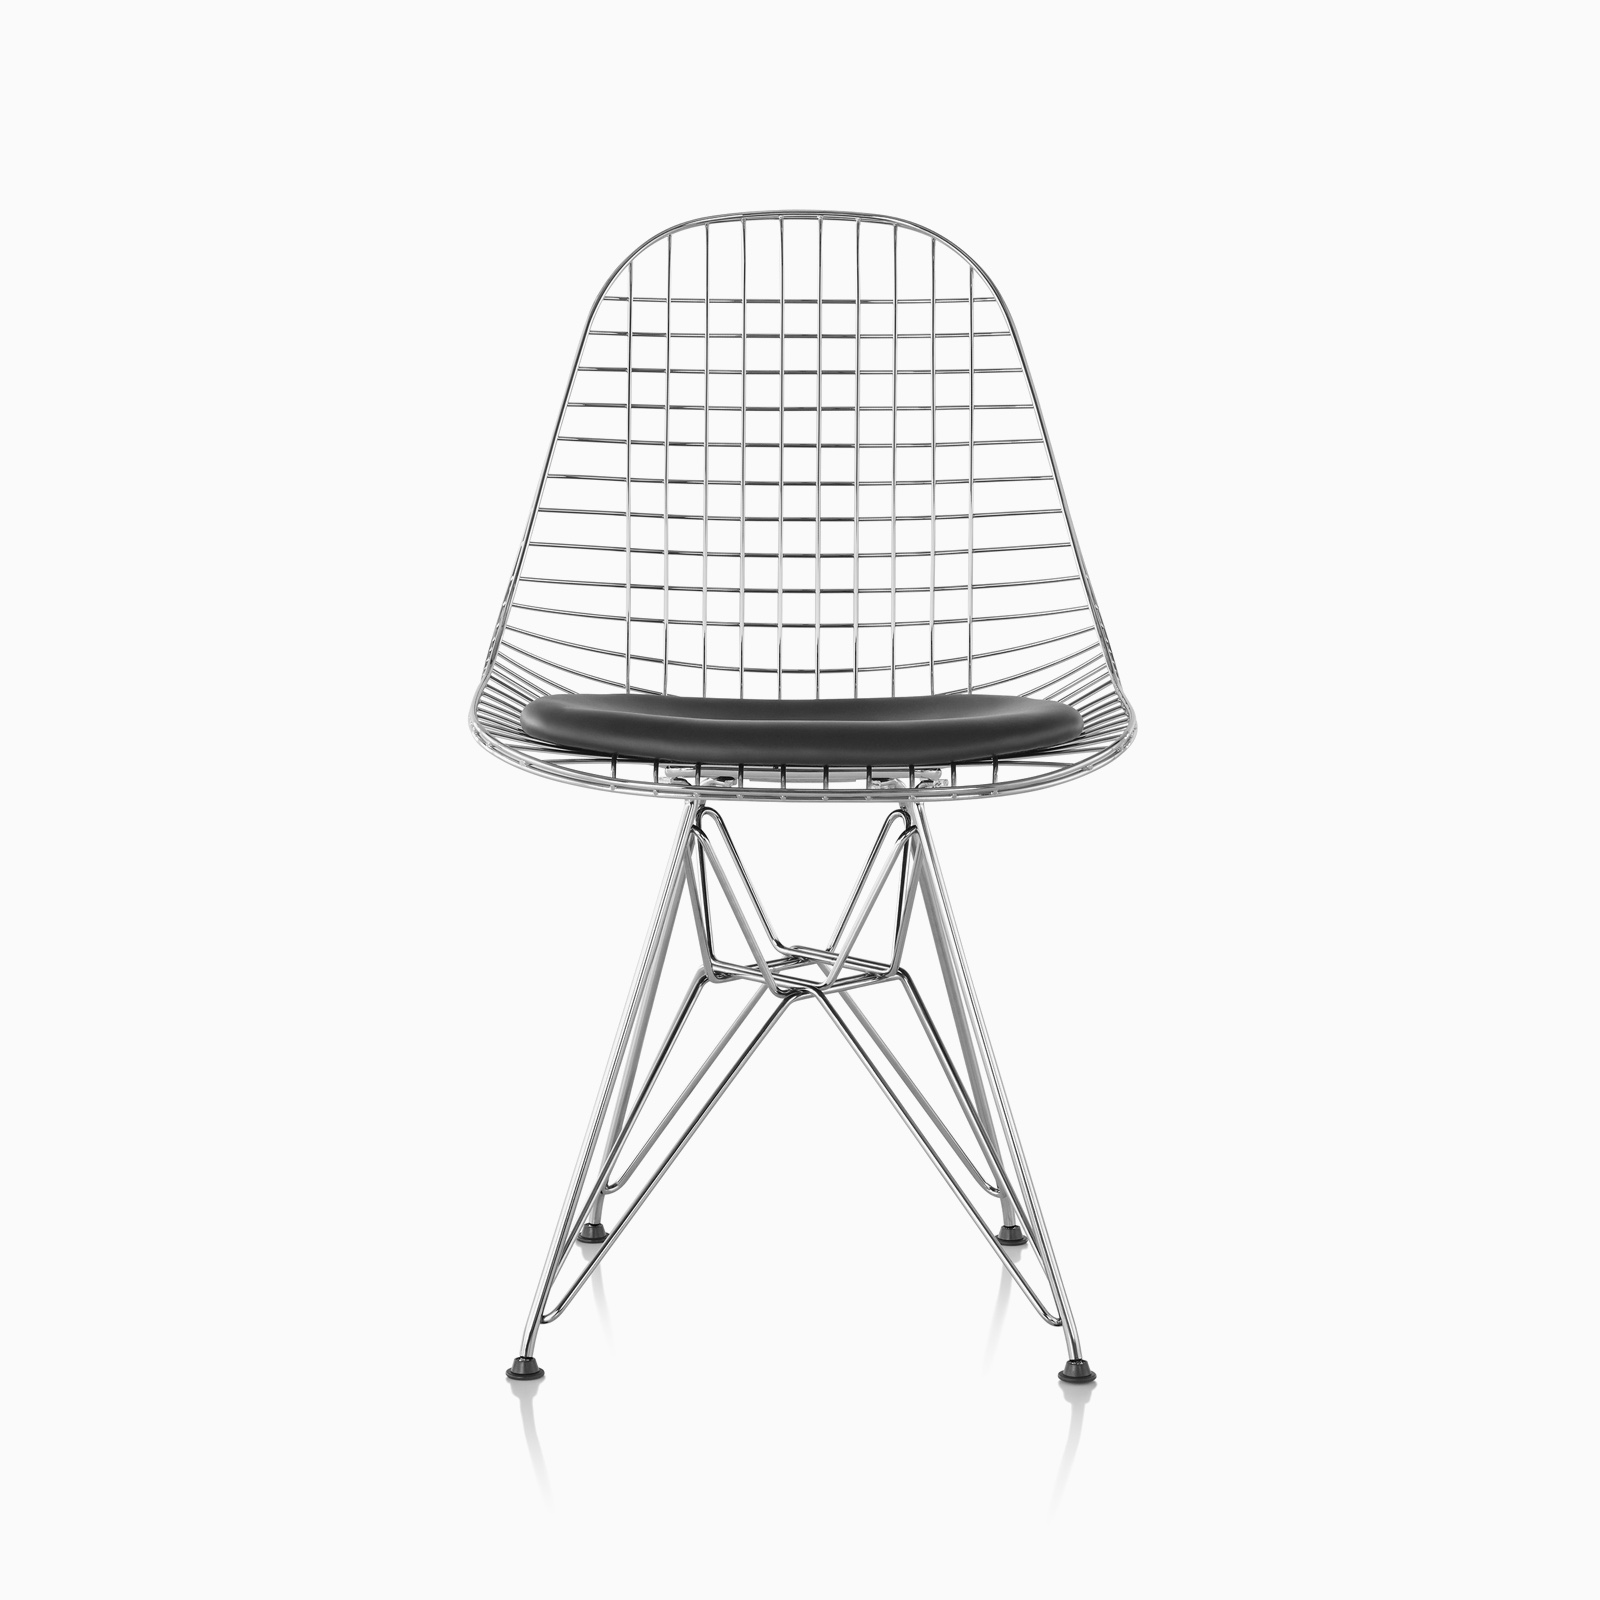 An Eames Wire Chair featuring black leather upholstered seat pads and chrome legs.